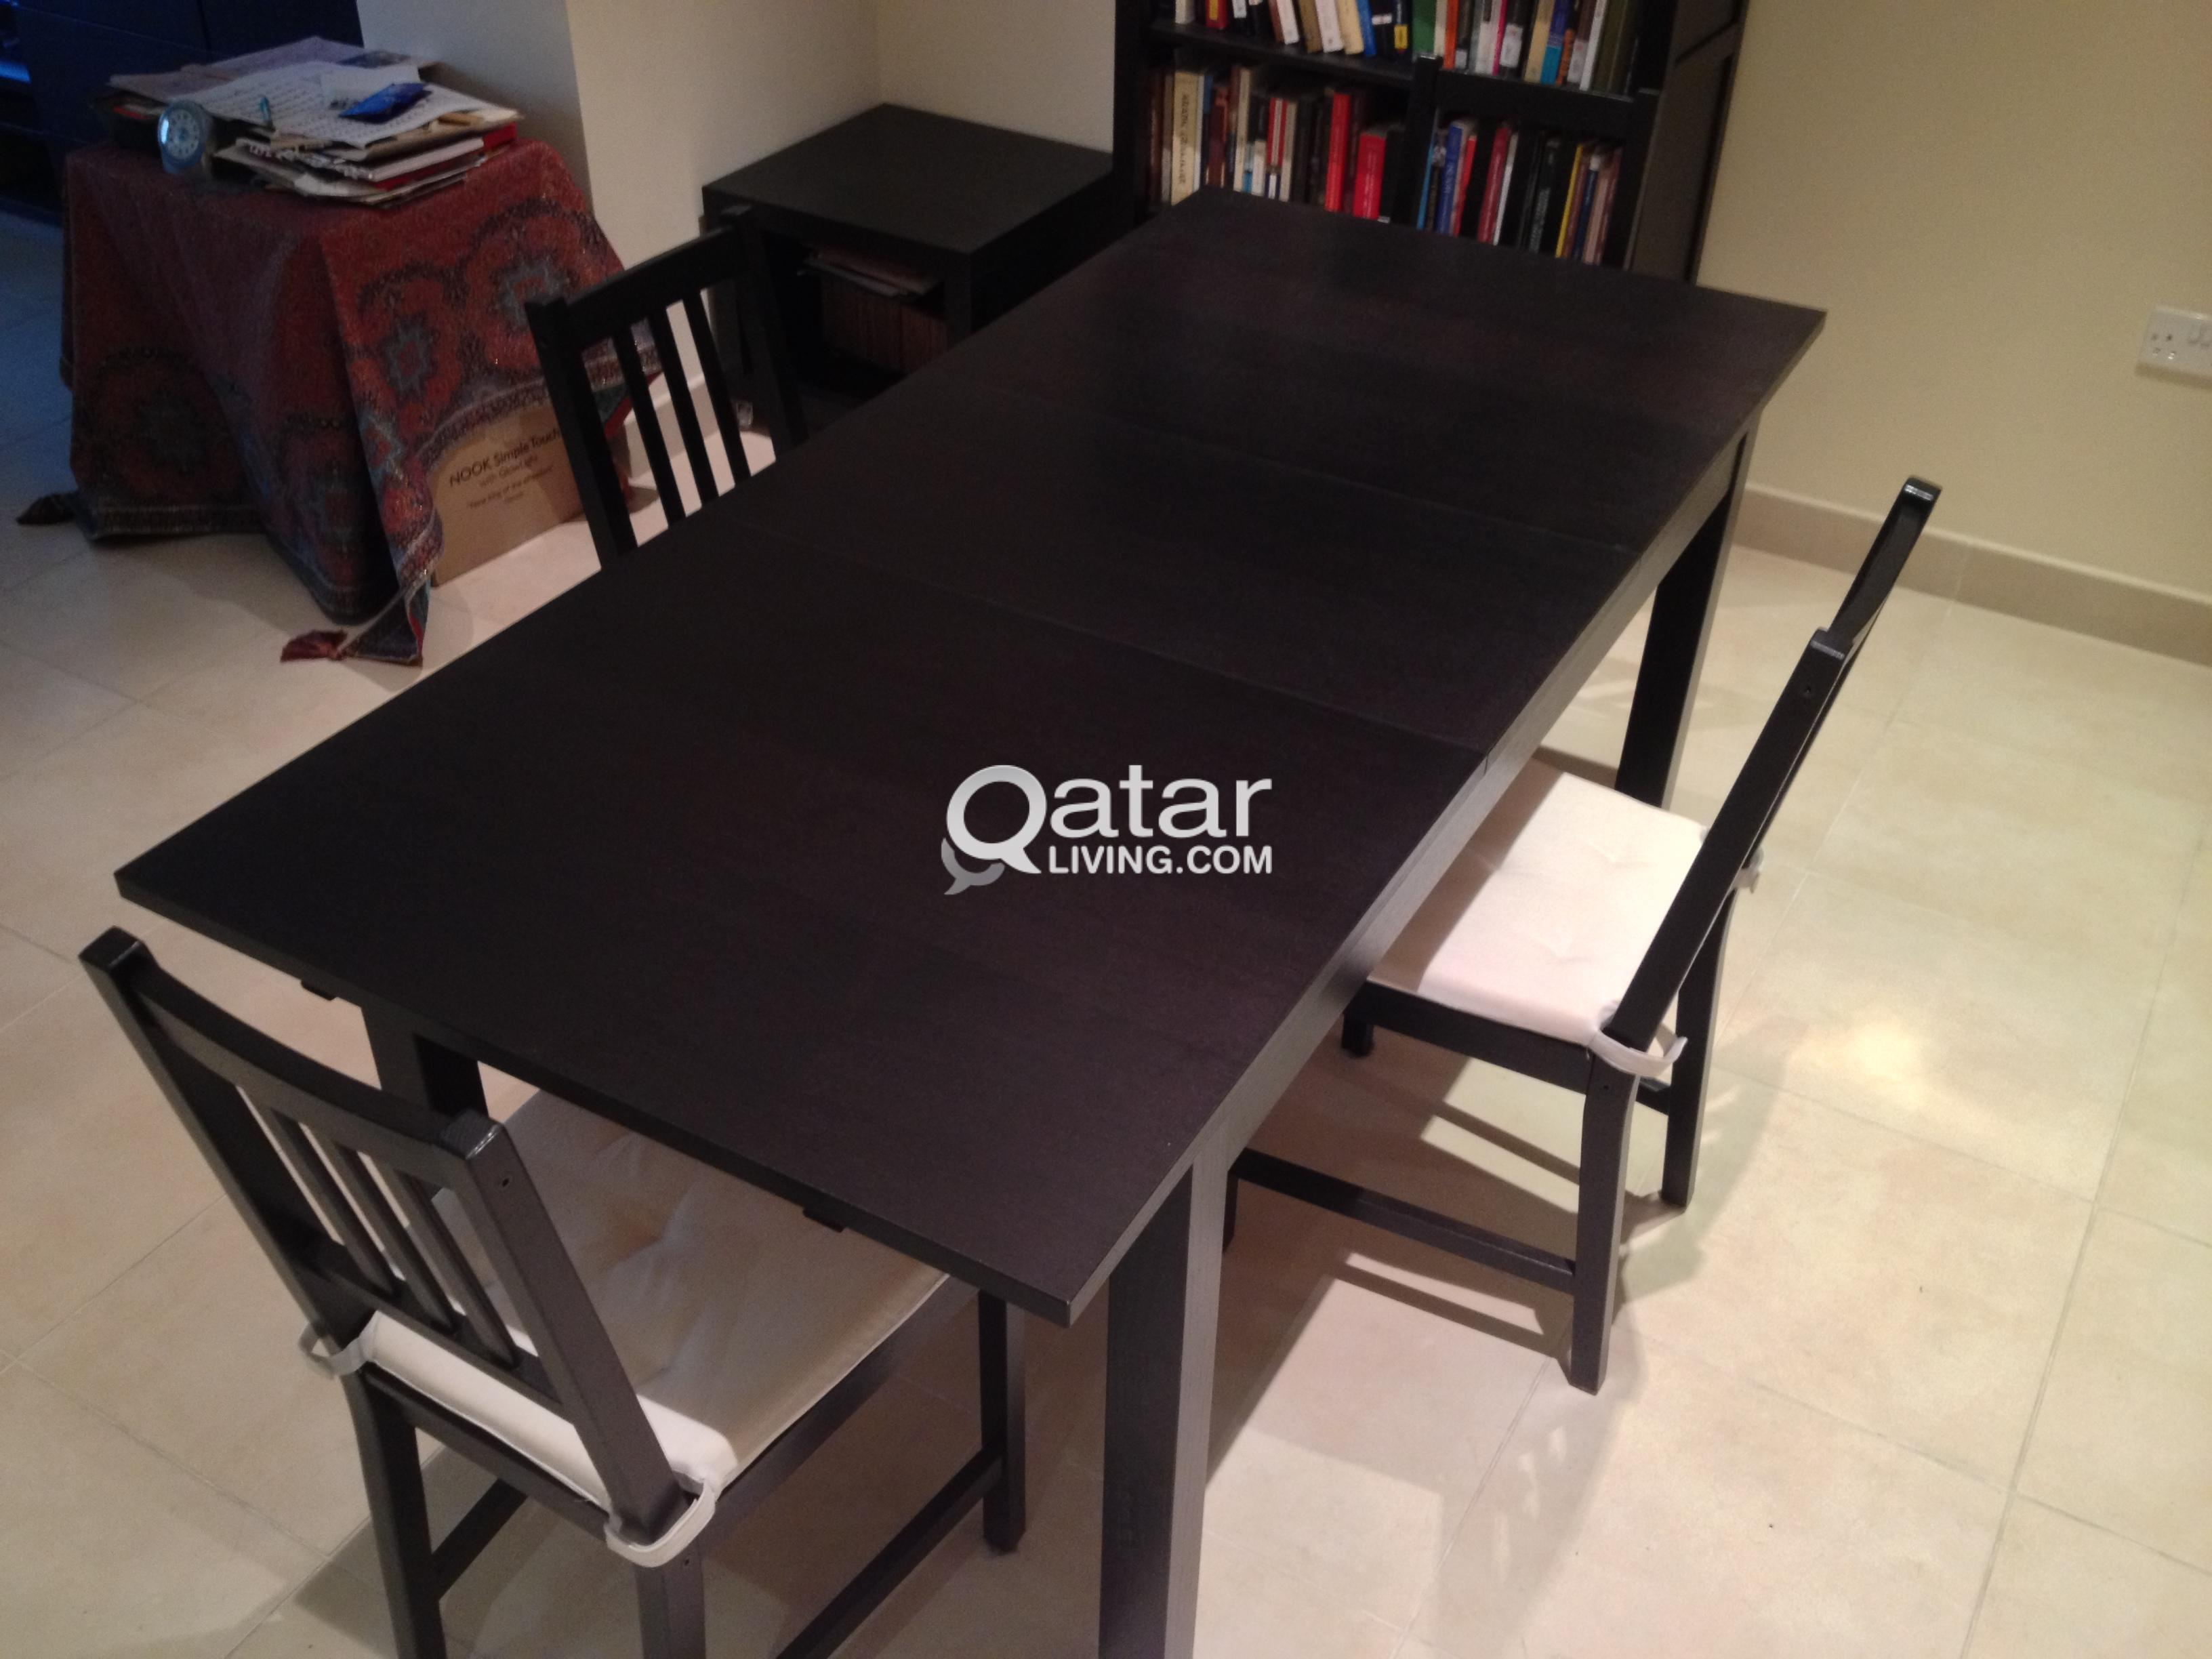 Ikea furniture for sale only used two months fully